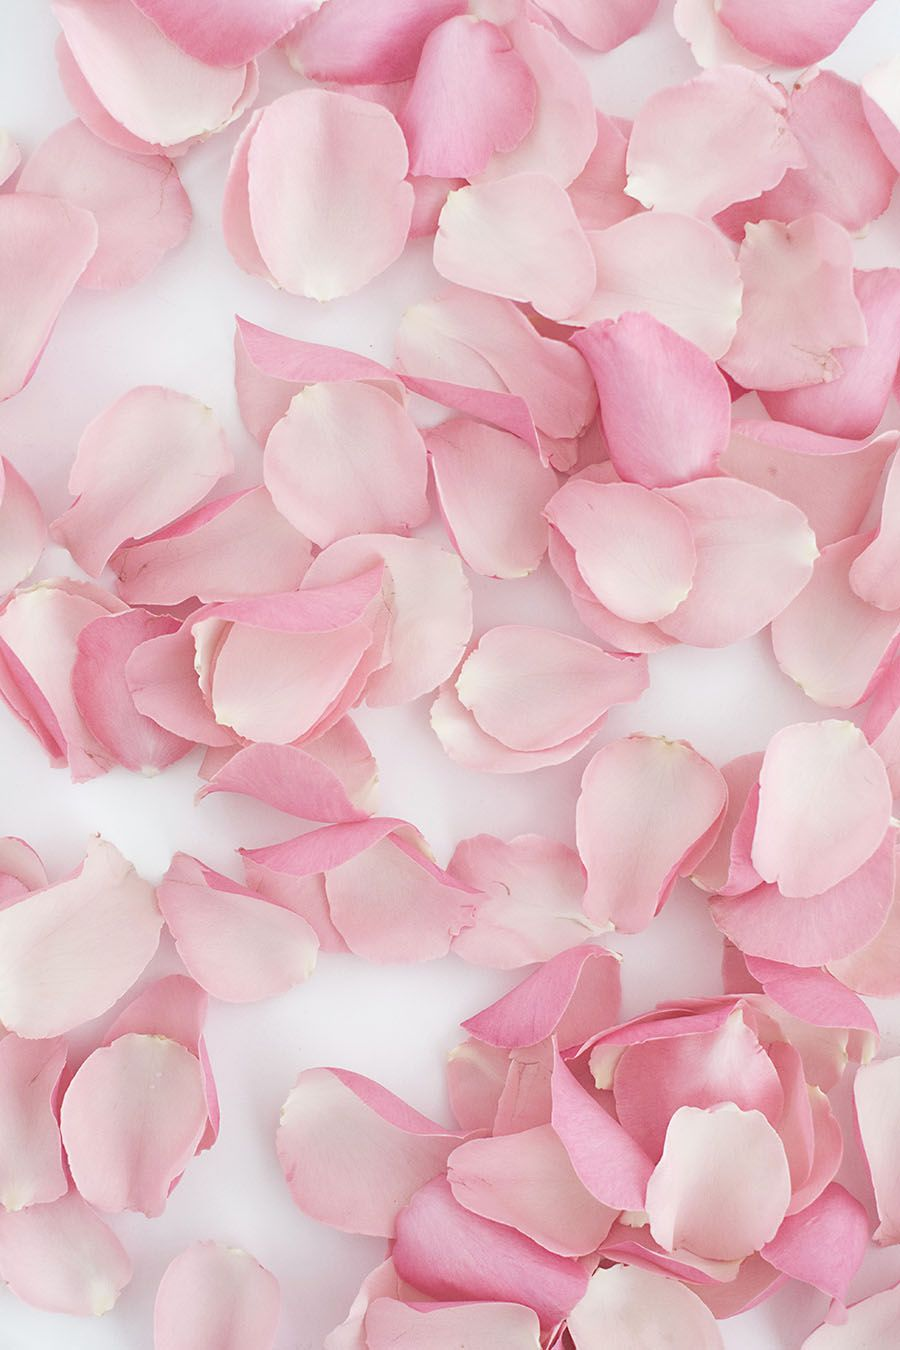 Diy Rose Petal Garland Backdrop Pink Wallpaper Cute Pink Background